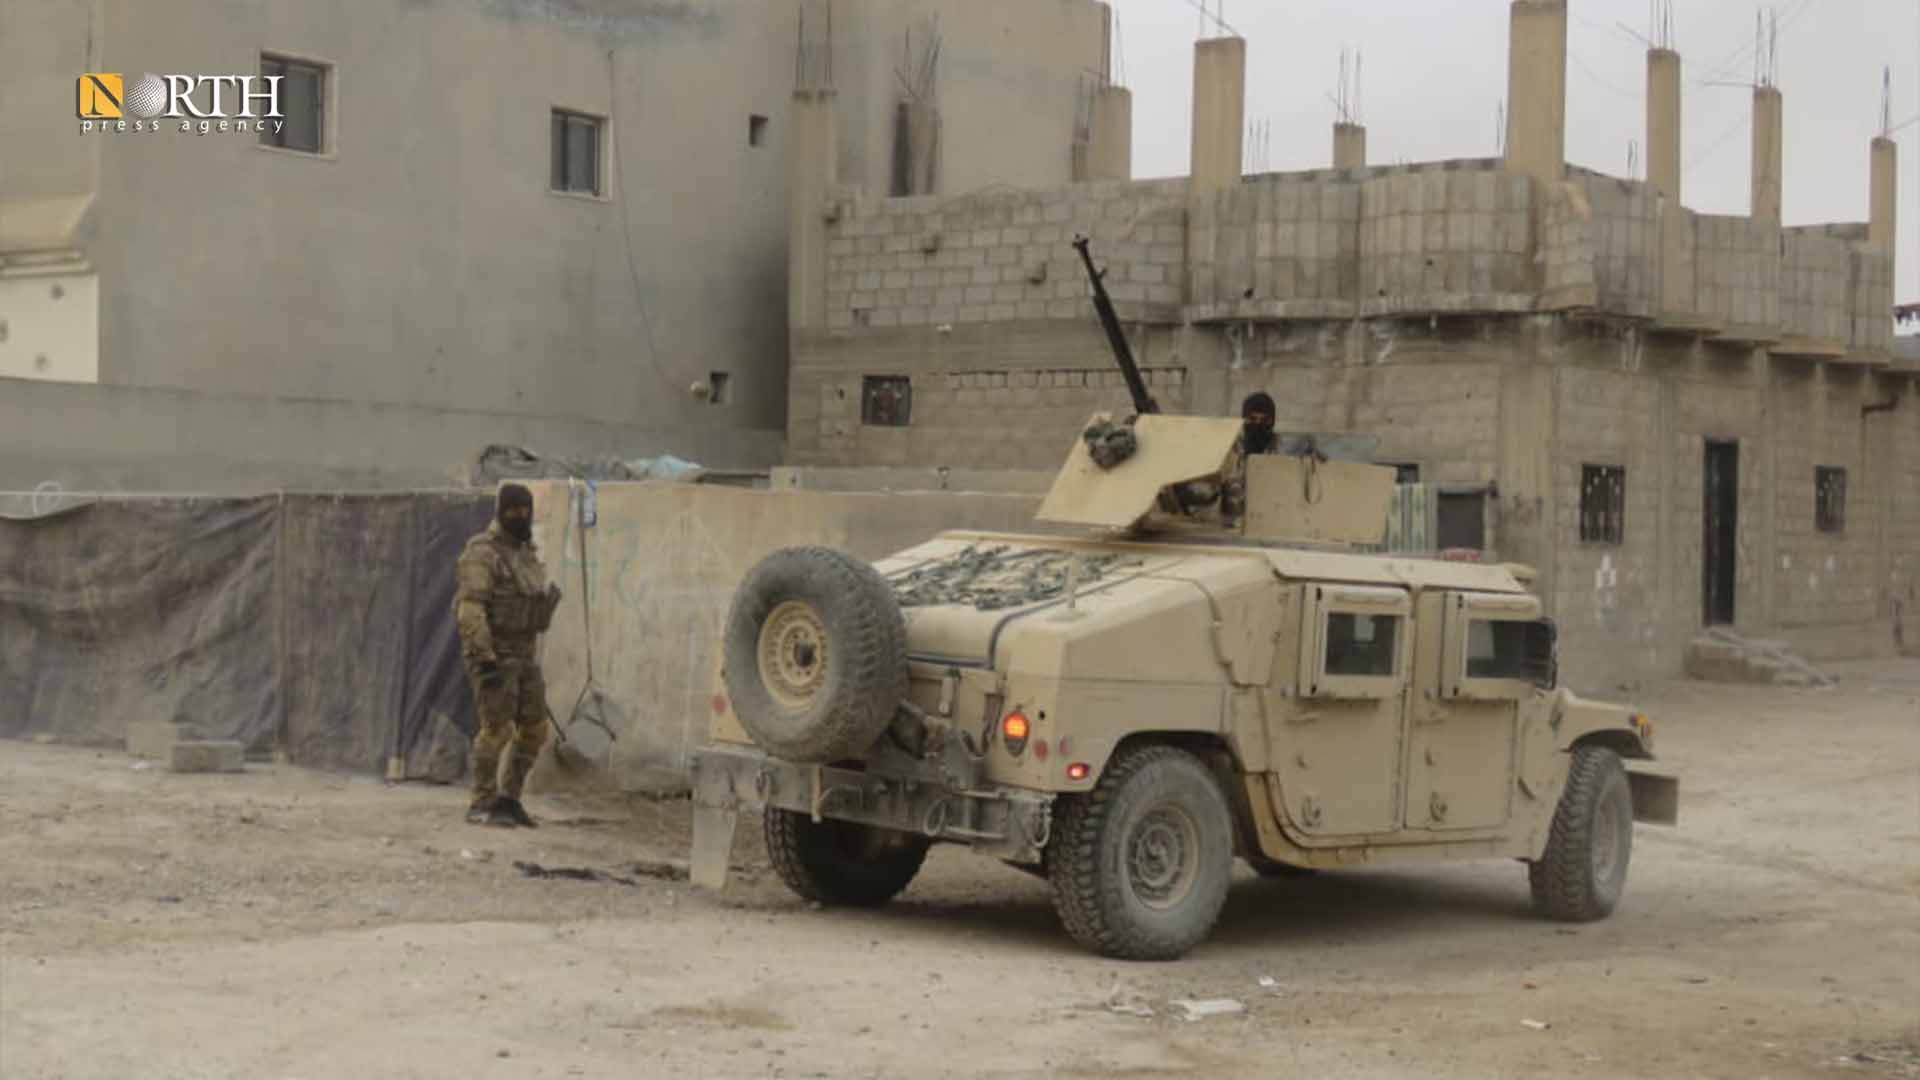 Military armored vehicle of SDF while combating Hawaij Ziban town –North Press